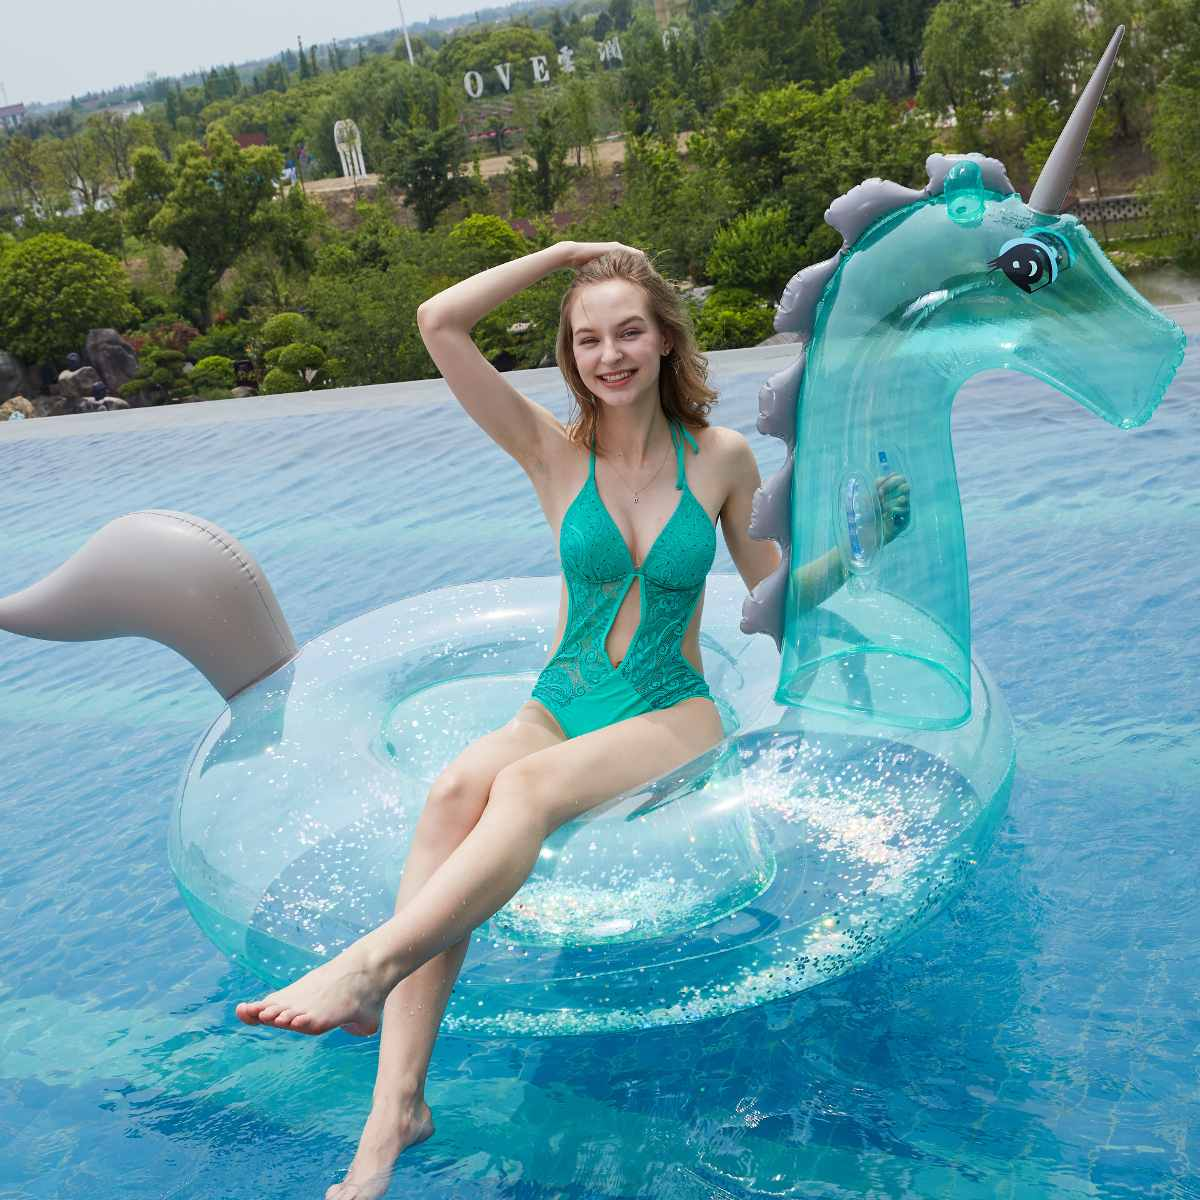 Giant Inflatable 240cm Unicorns Pool Floats Tube Raft Swimming Ring Circle Water Bed Boia Piscina Adults Party ToysGiant Inflatable 240cm Unicorns Pool Floats Tube Raft Swimming Ring Circle Water Bed Boia Piscina Adults Party Toys